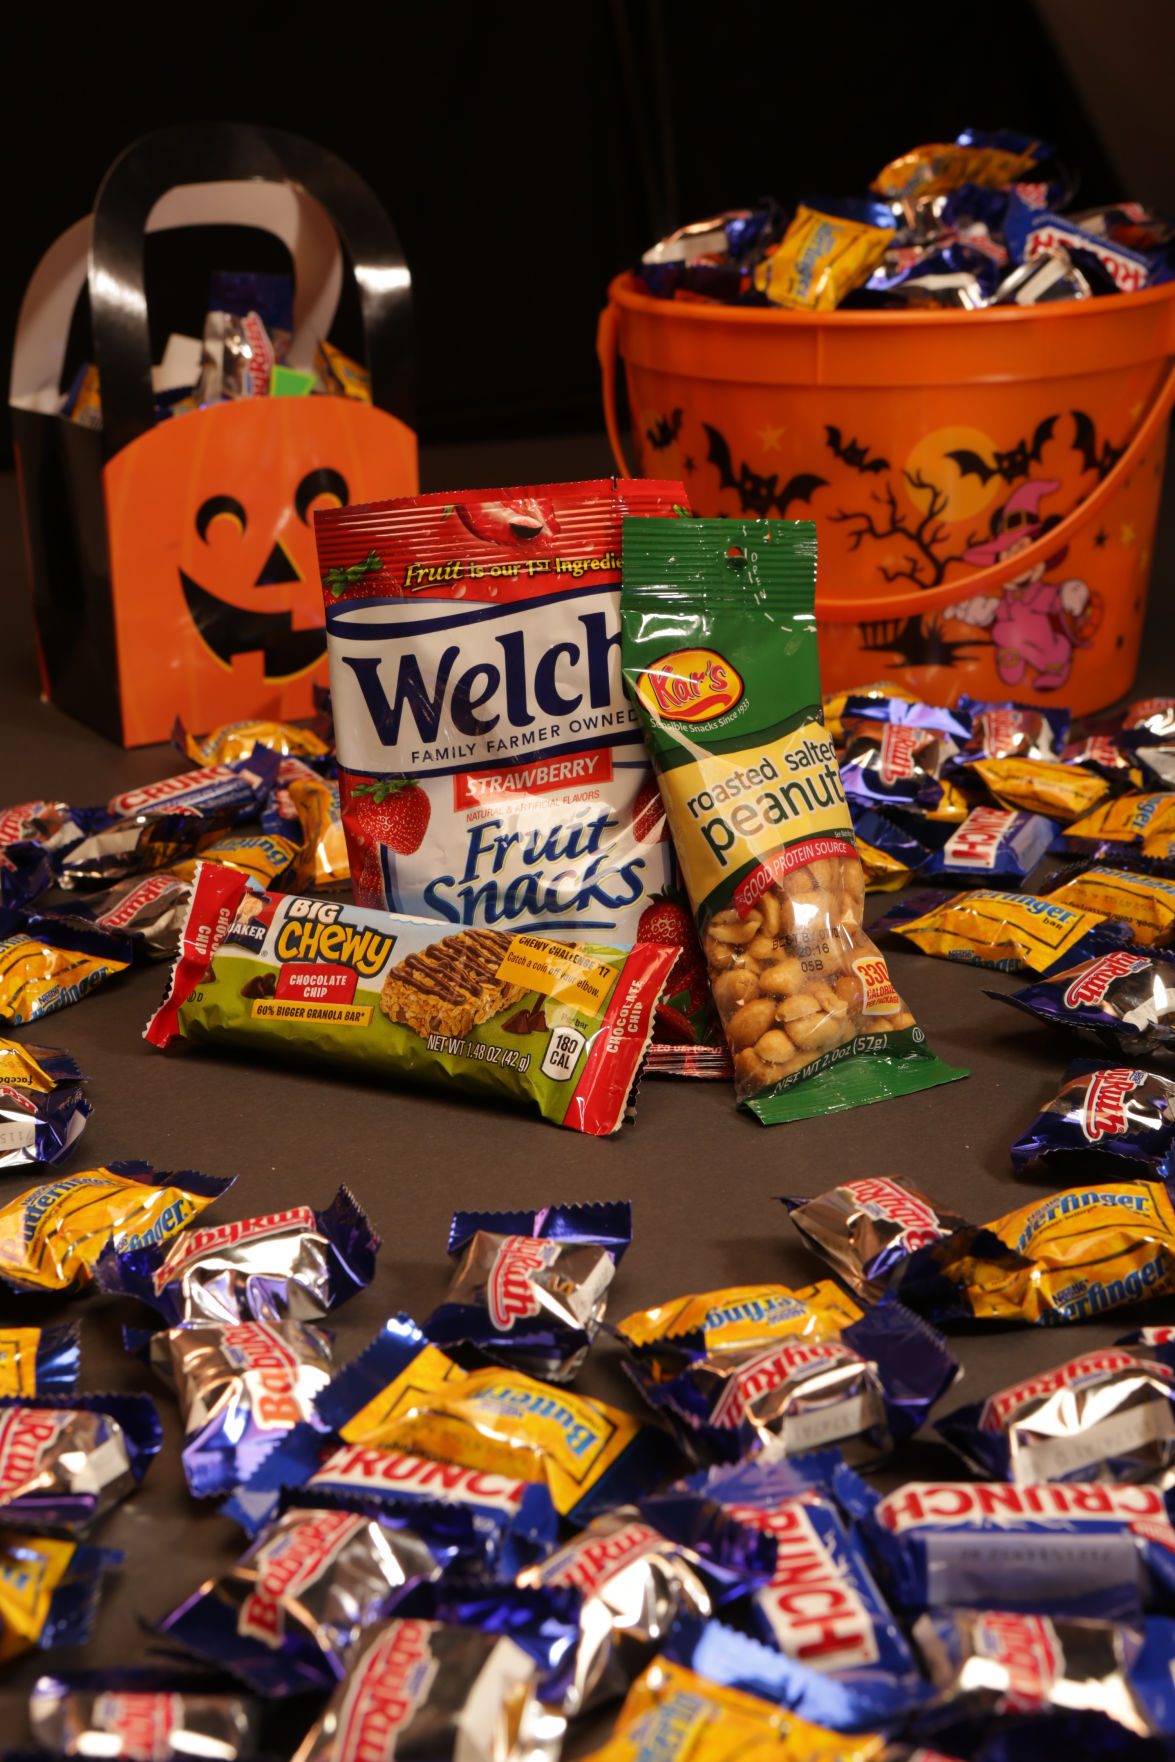 NWI nutritionists offer tips on healthier options for trick-or-treating, Halloween parties